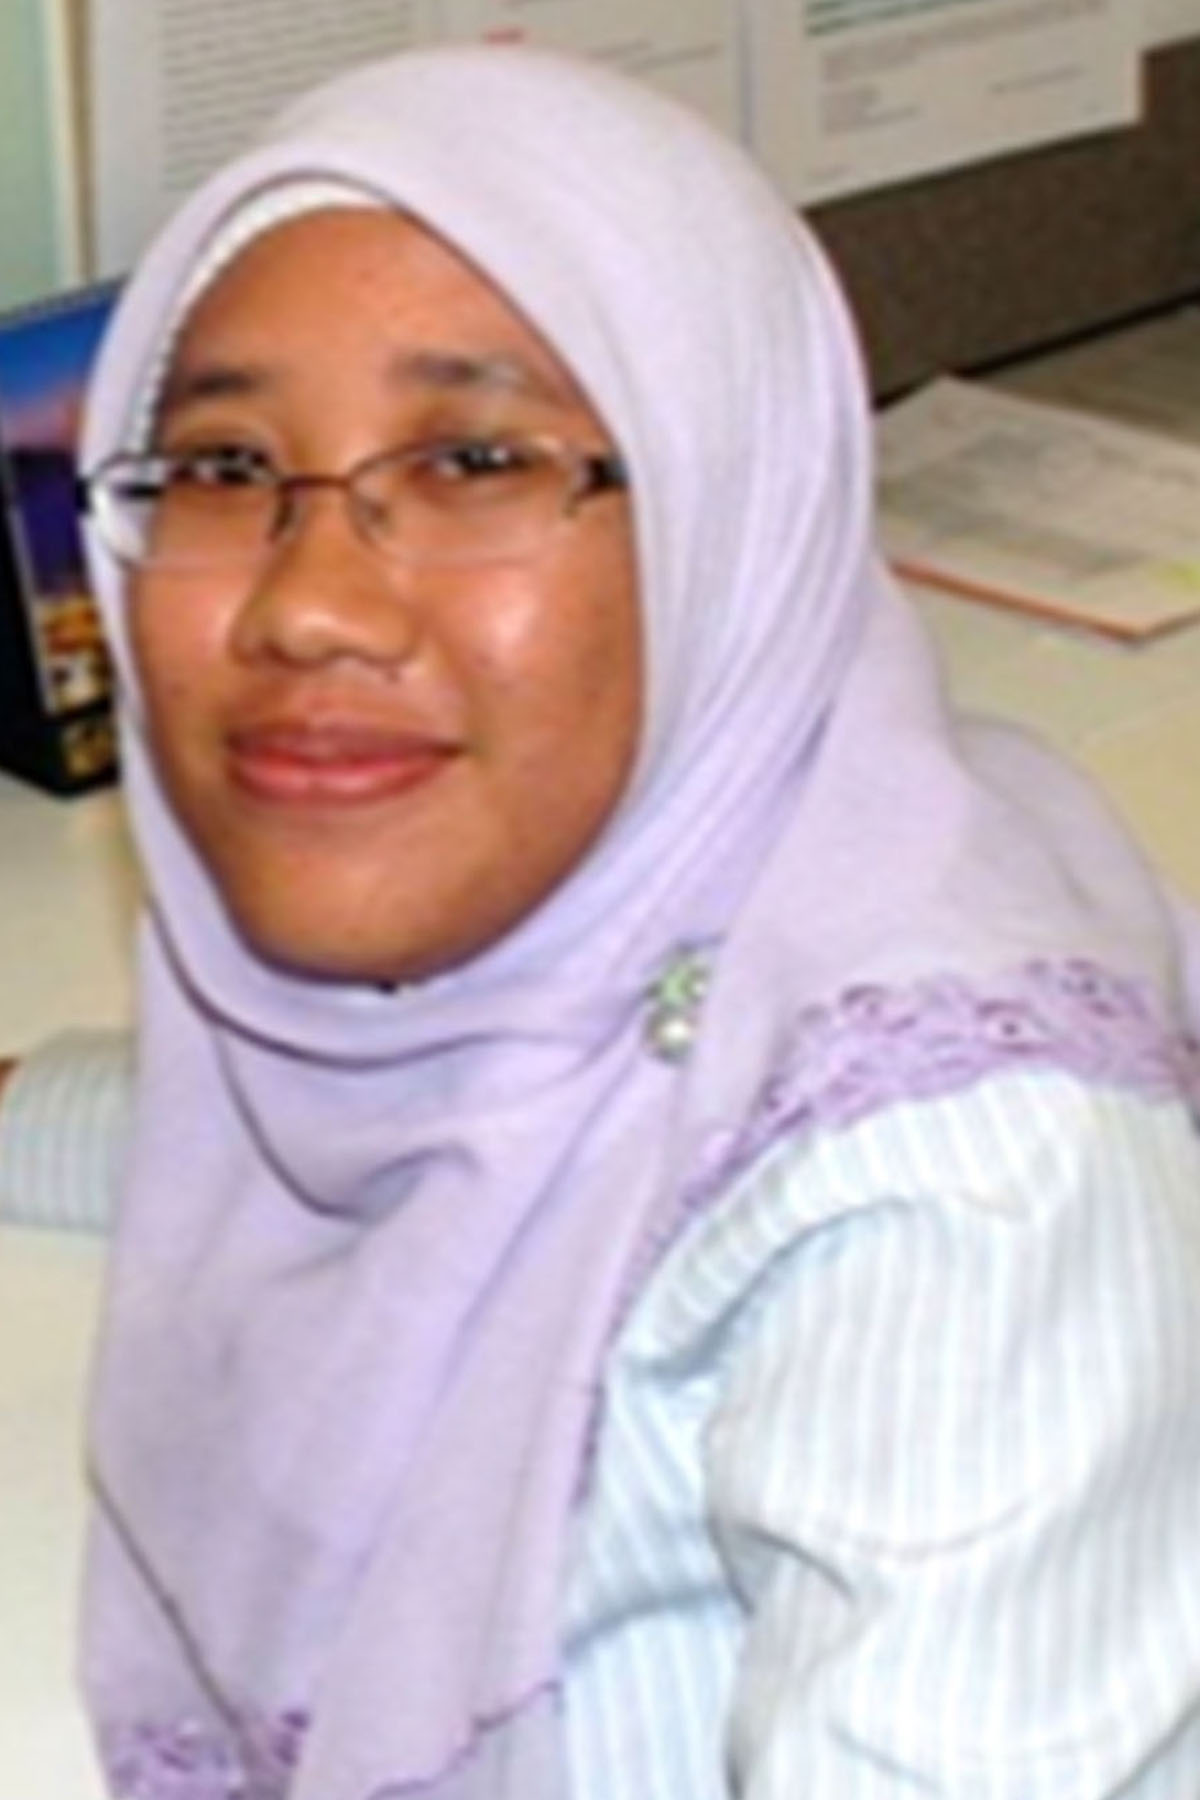 Norashikin Bt Hanipah - Manager, Admin / AccountOffice : 03-2783 6994H/P: 010 760 1769norashikin_h@petronas.comnorashikin@pimmag.com.myJoined PIMMAG since Nov 2009. She is a graduate with a Bachelor Degree In Accounting & Entrepreneurship from Curtin University of Technology, Australia. She is entrusted to oversee the financial accounts and administration of PIMMAG.